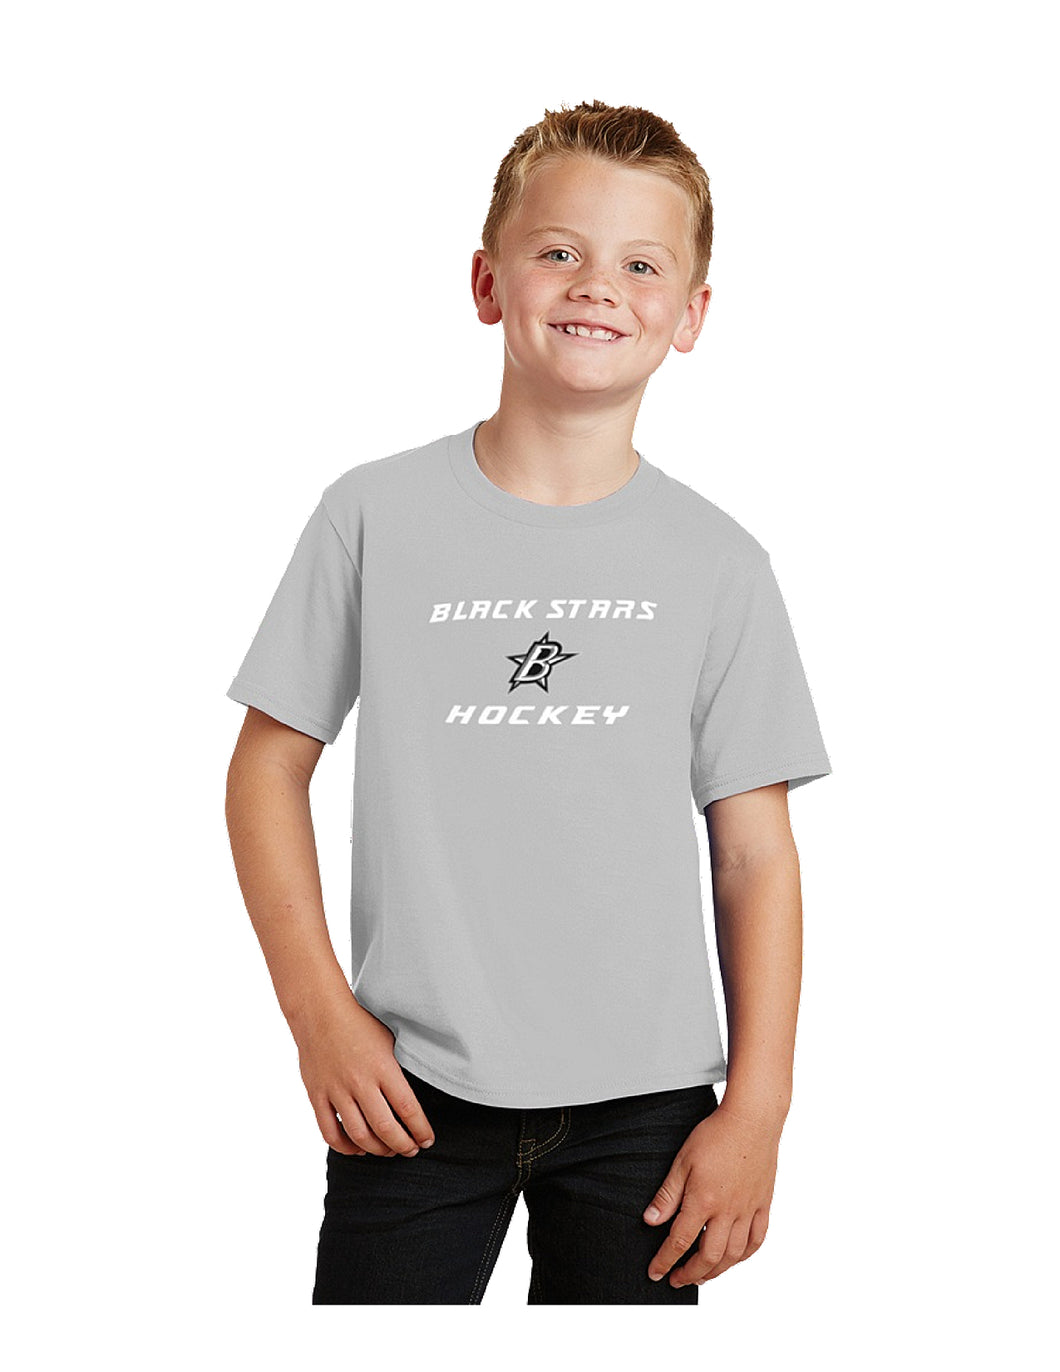 Black Stars Port & Company® Youth Fan Favorite™Tee Silver with Black Stars Hockey Logo (PC450Y)